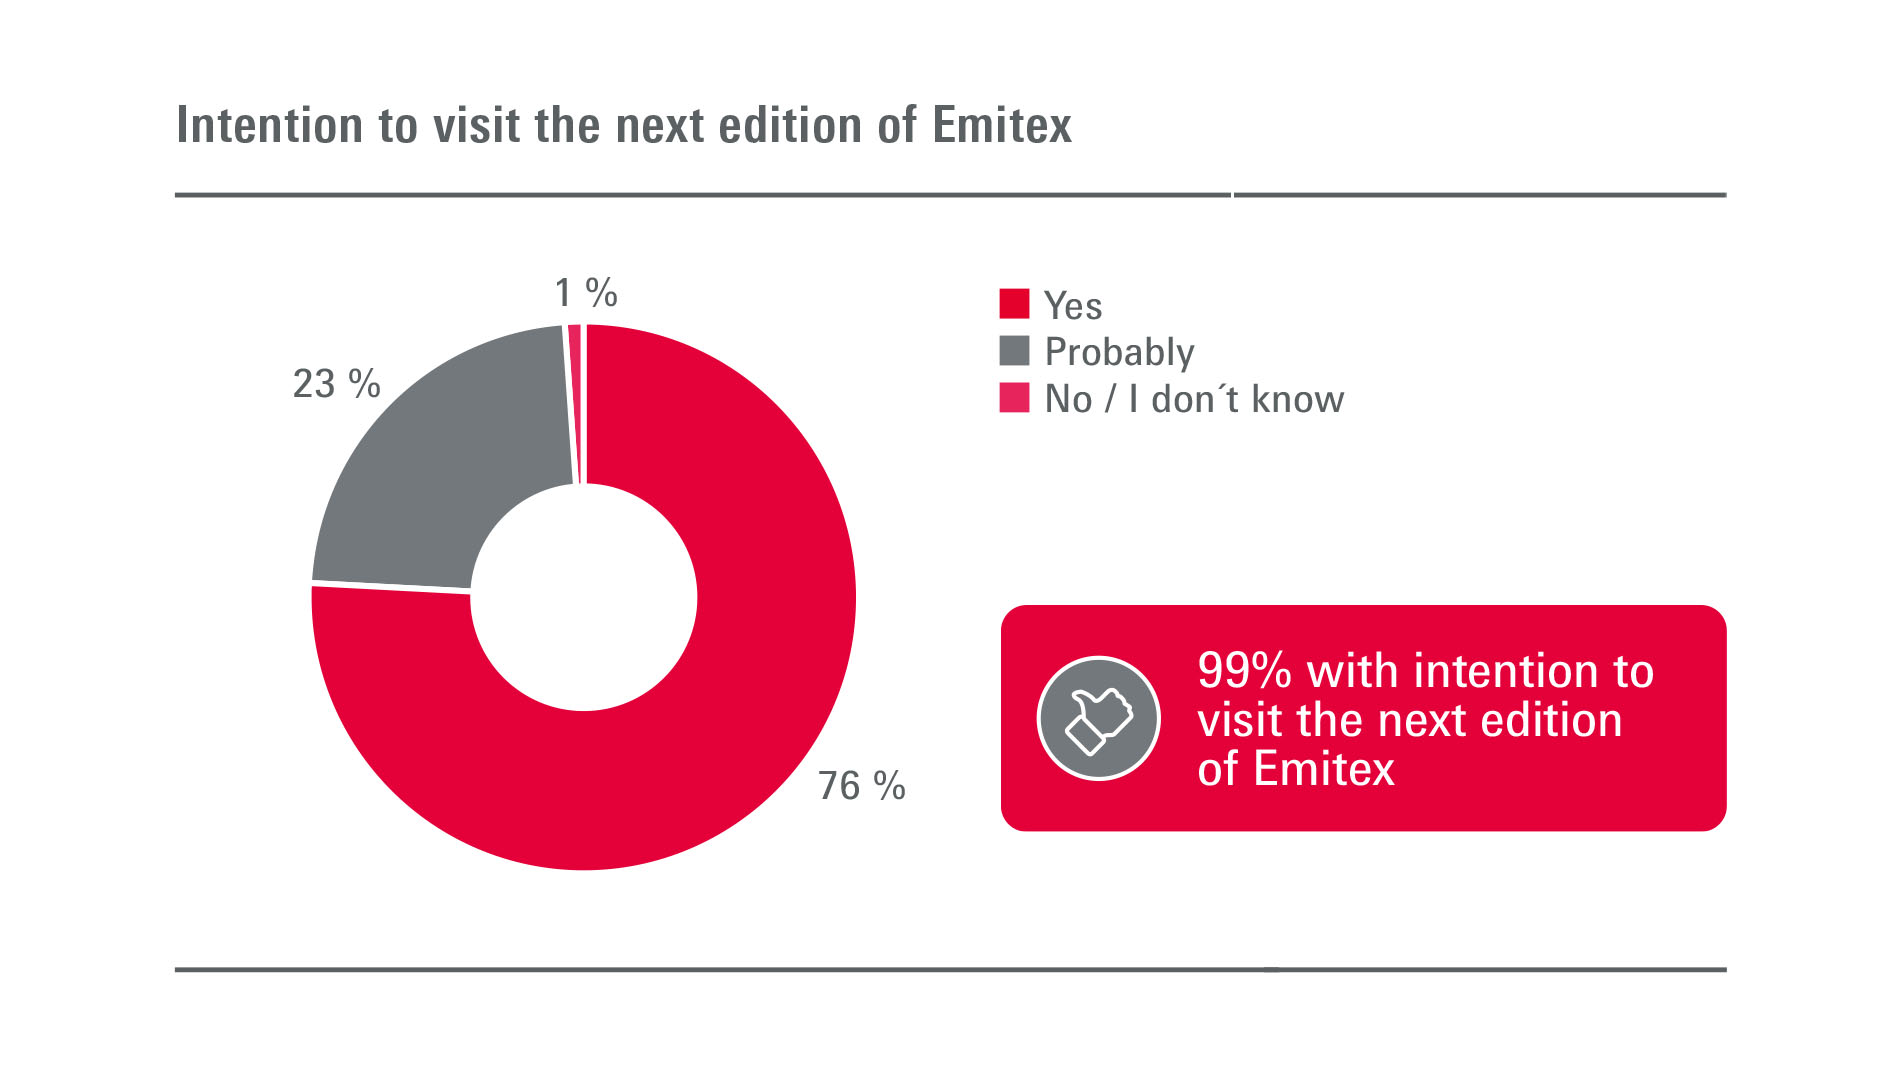 Emitex: Visitors - Intention to participate in next edition